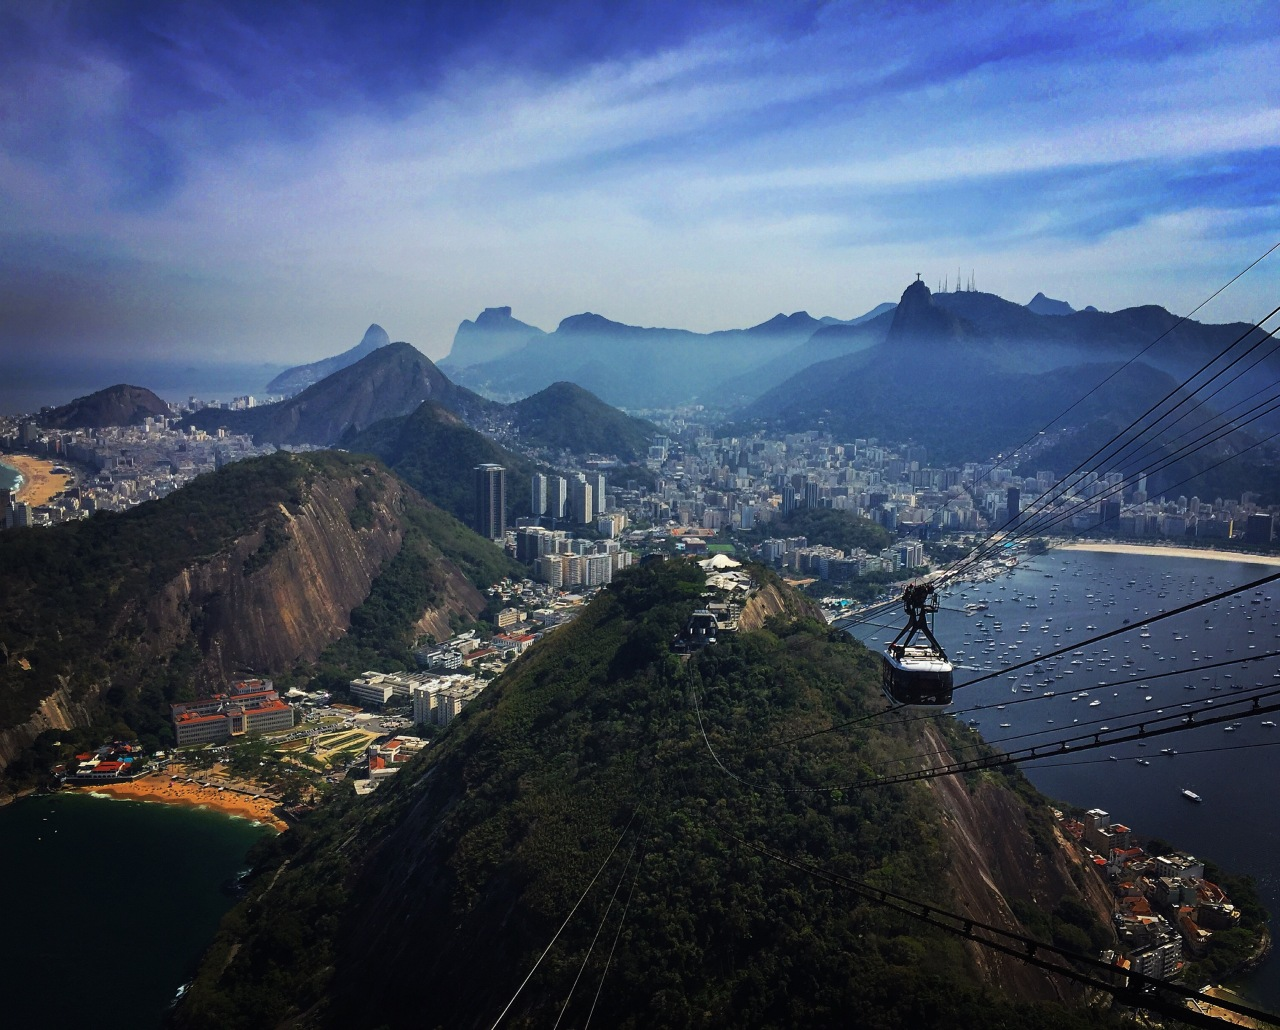 Pao de Acucar or Sugar Loaf Mountain